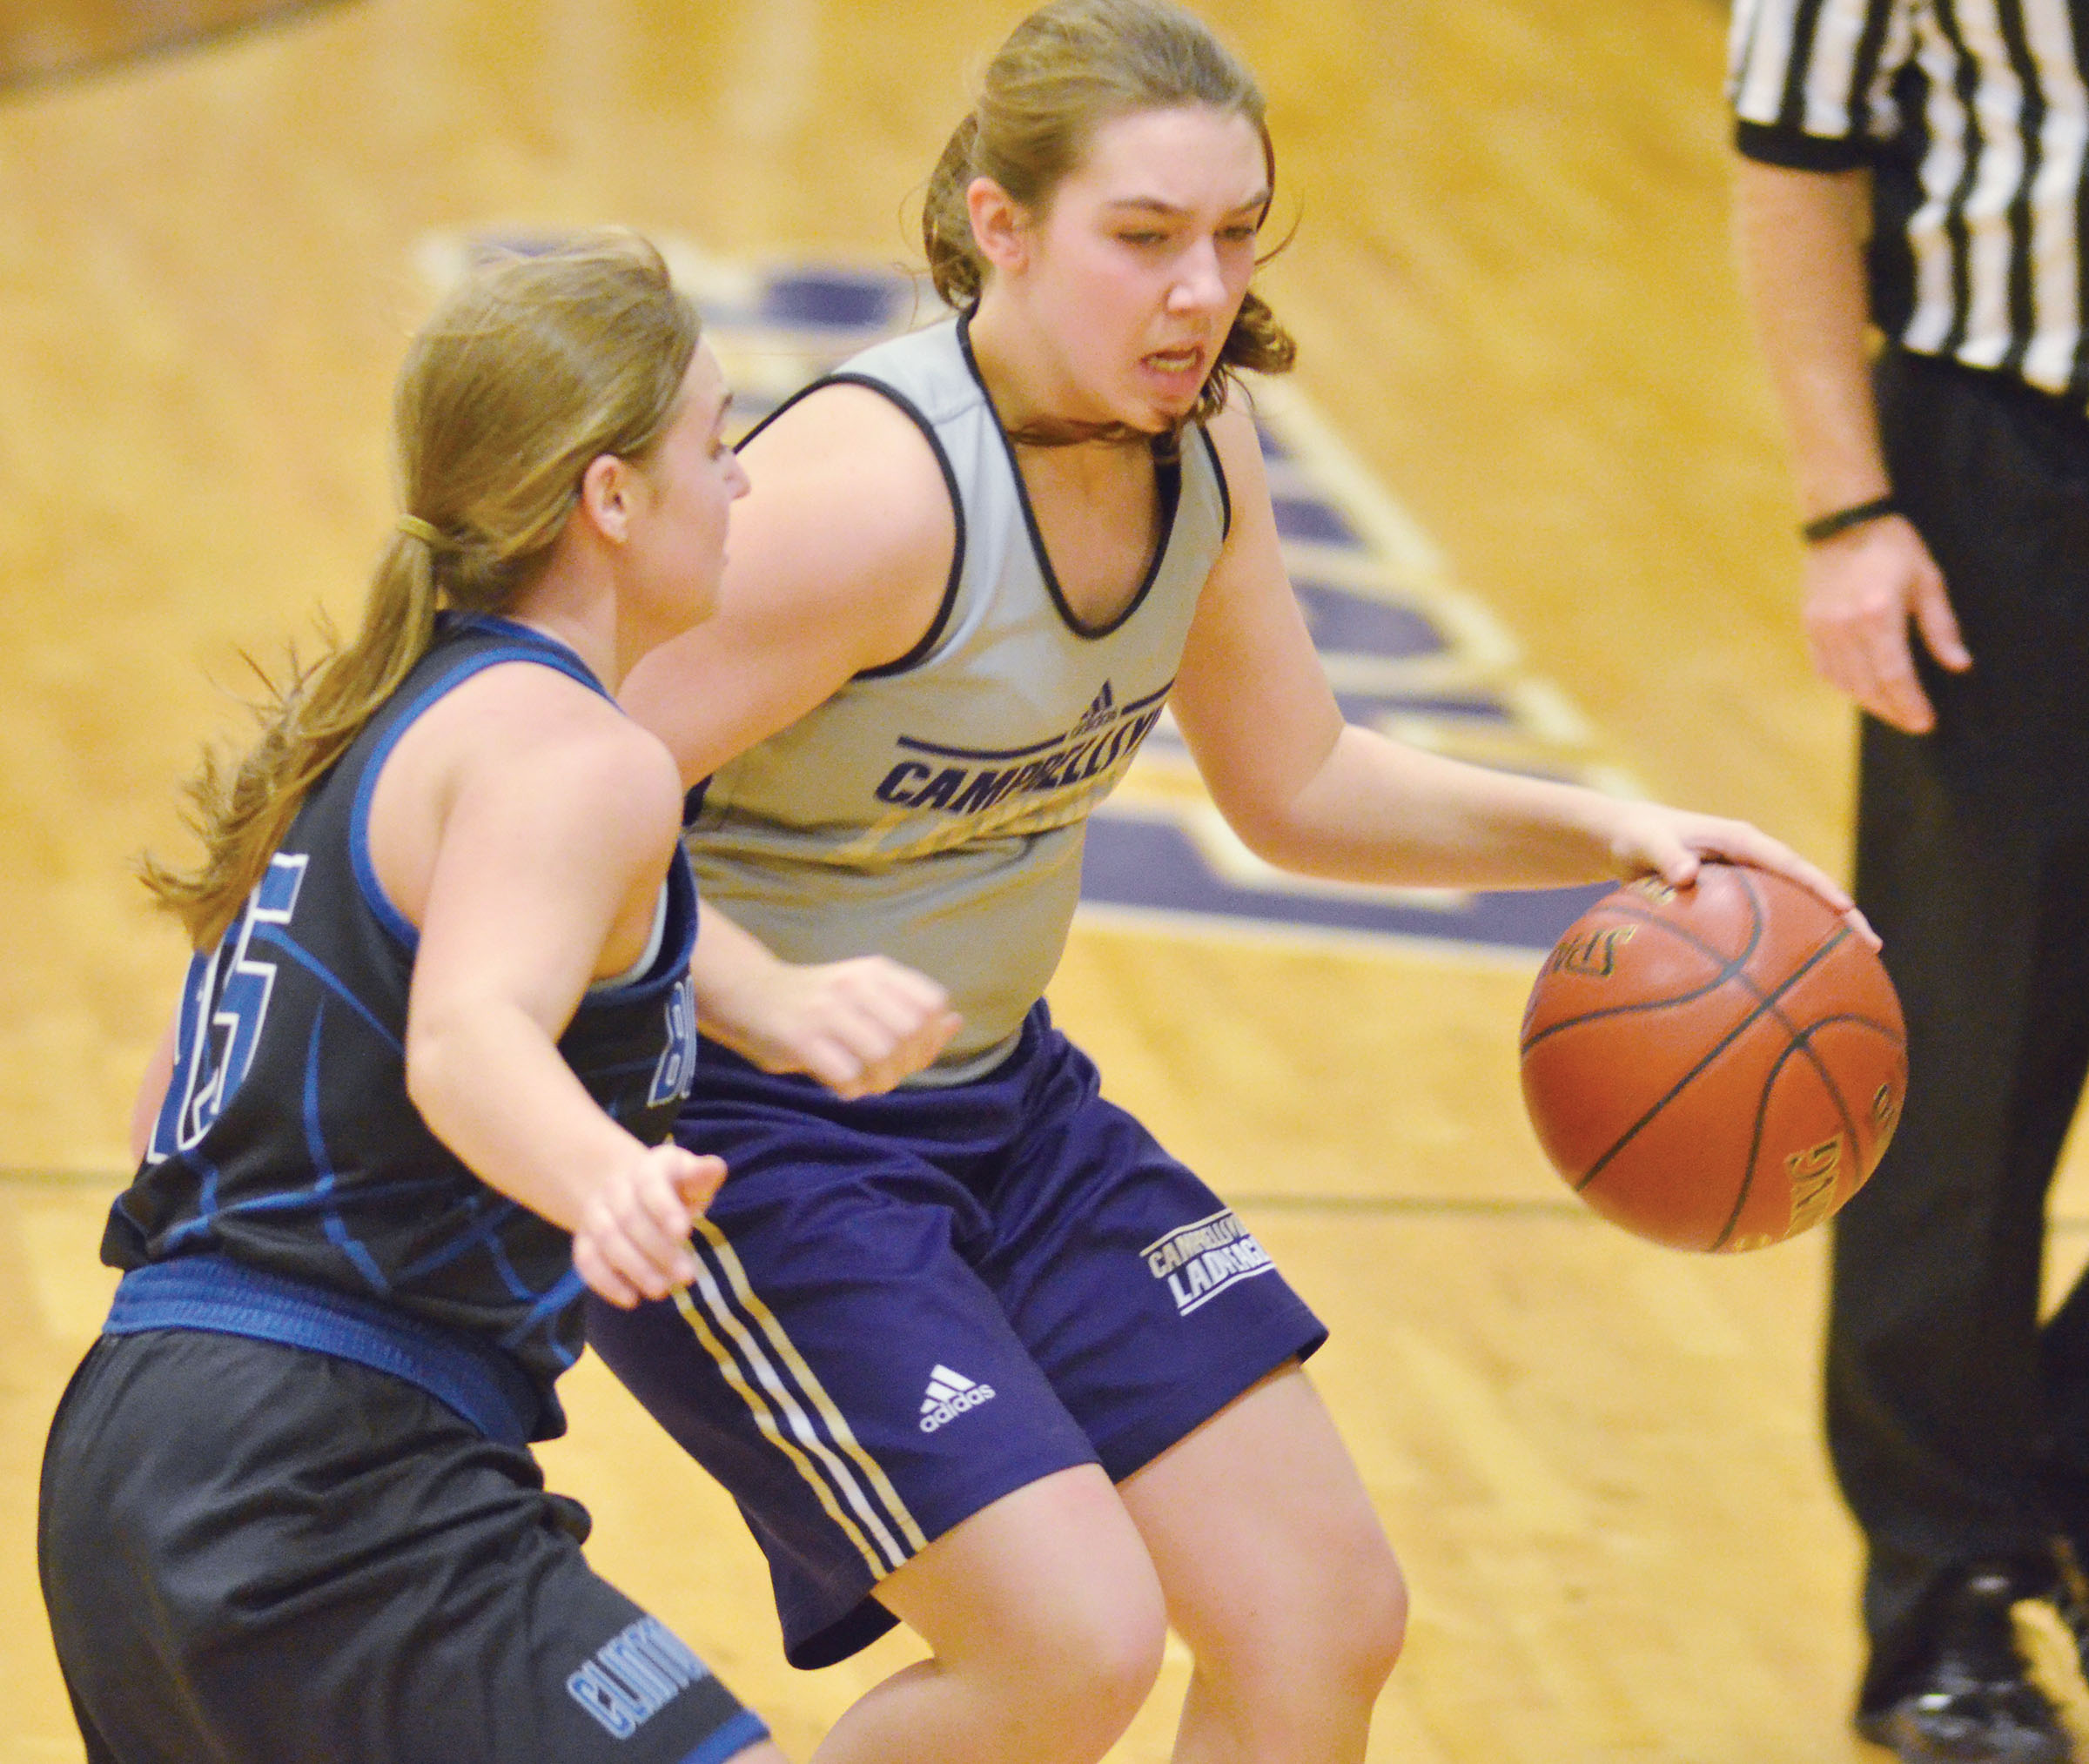 Campbellsville Middle School eighth-grader Abi Wiedewitsch protects the ball.